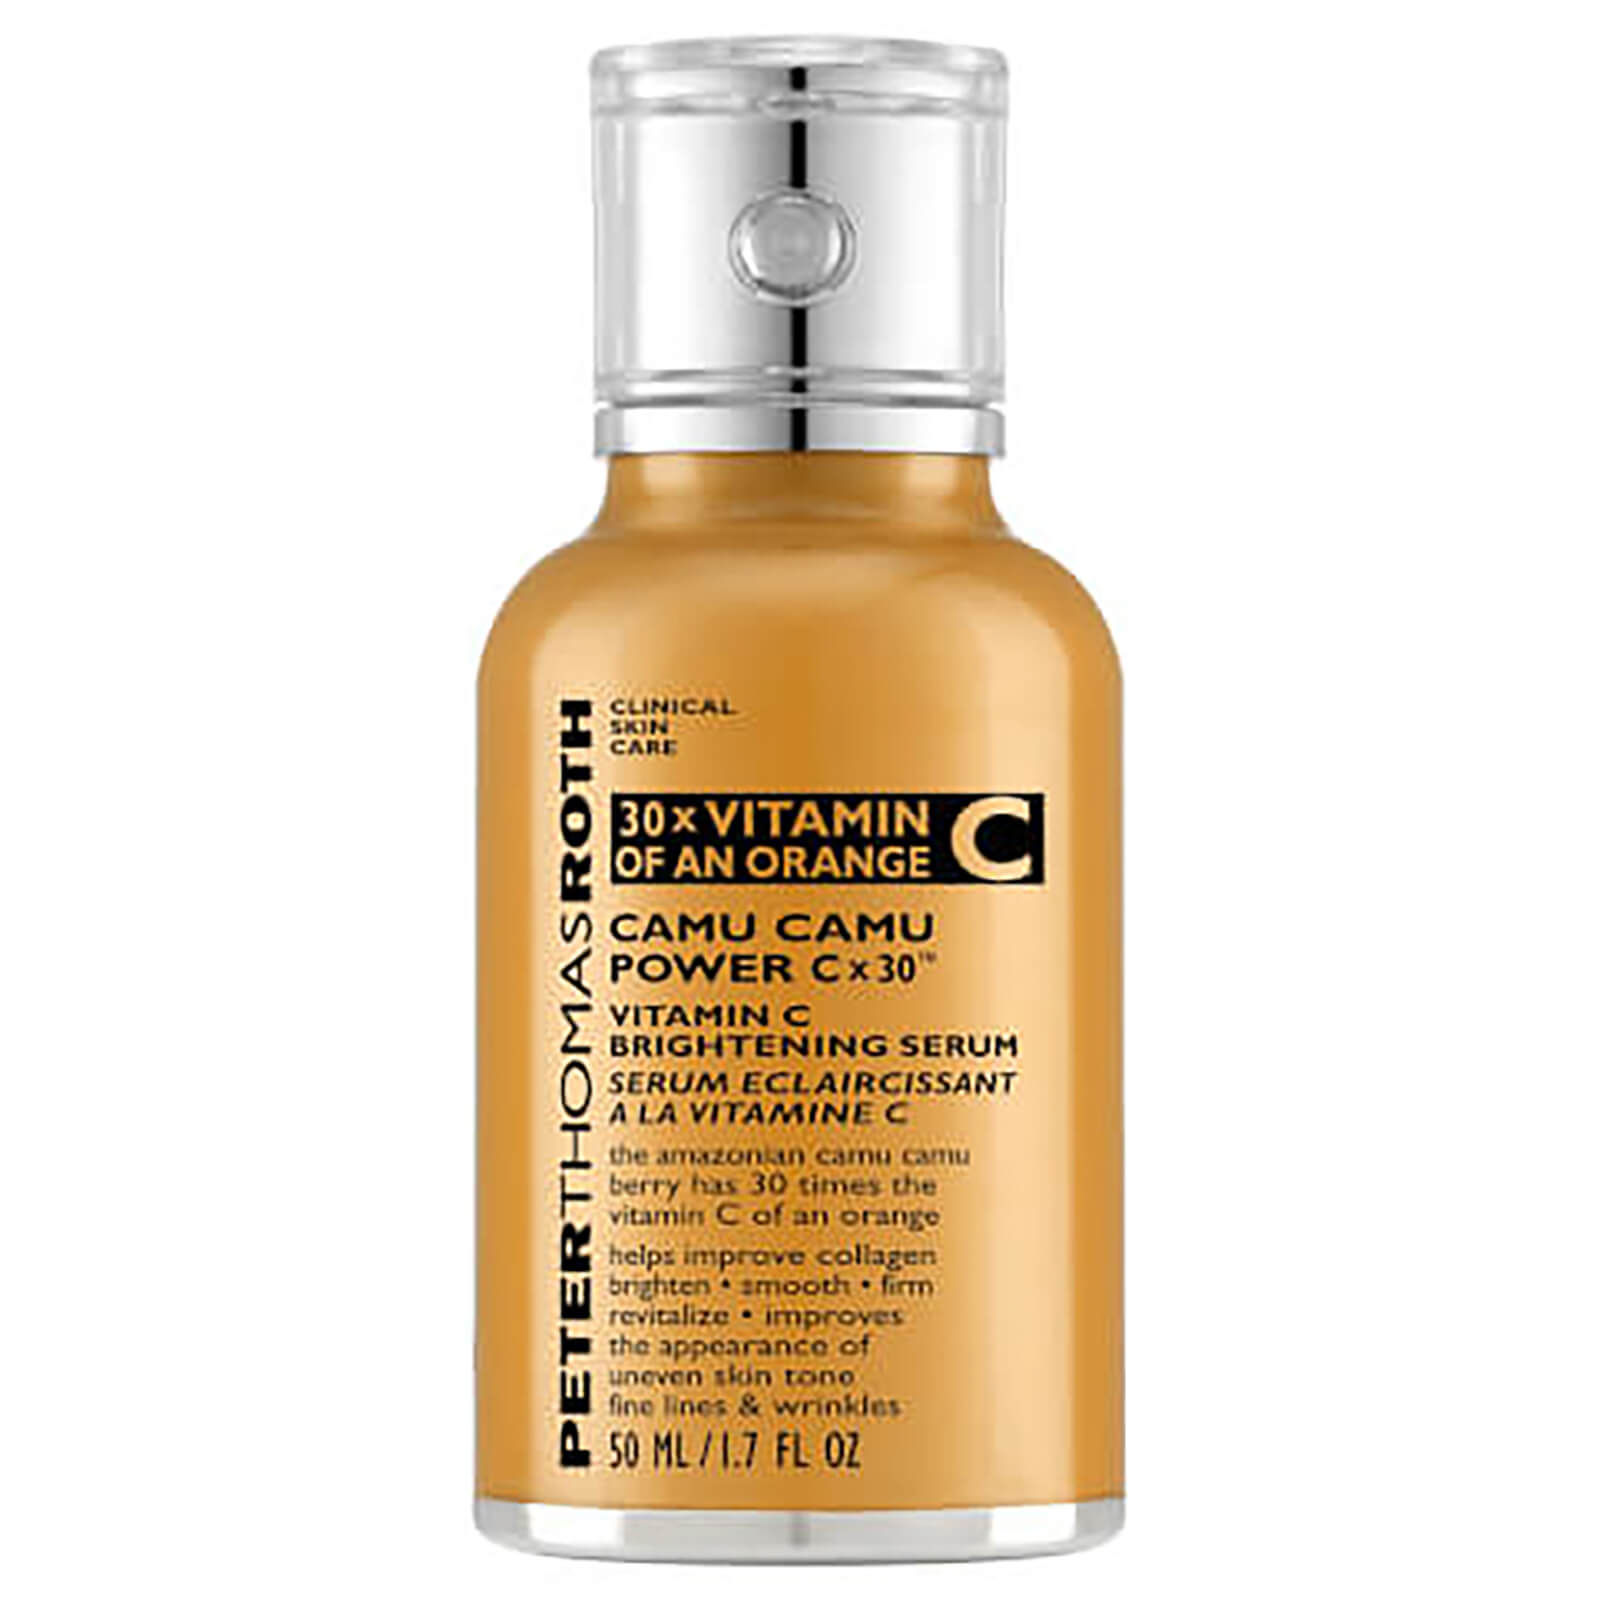 Image result for PETER THOMAS ROTH CAMU CAMU POWER C X30 VITAMIN C BRIGHTENING SERUM